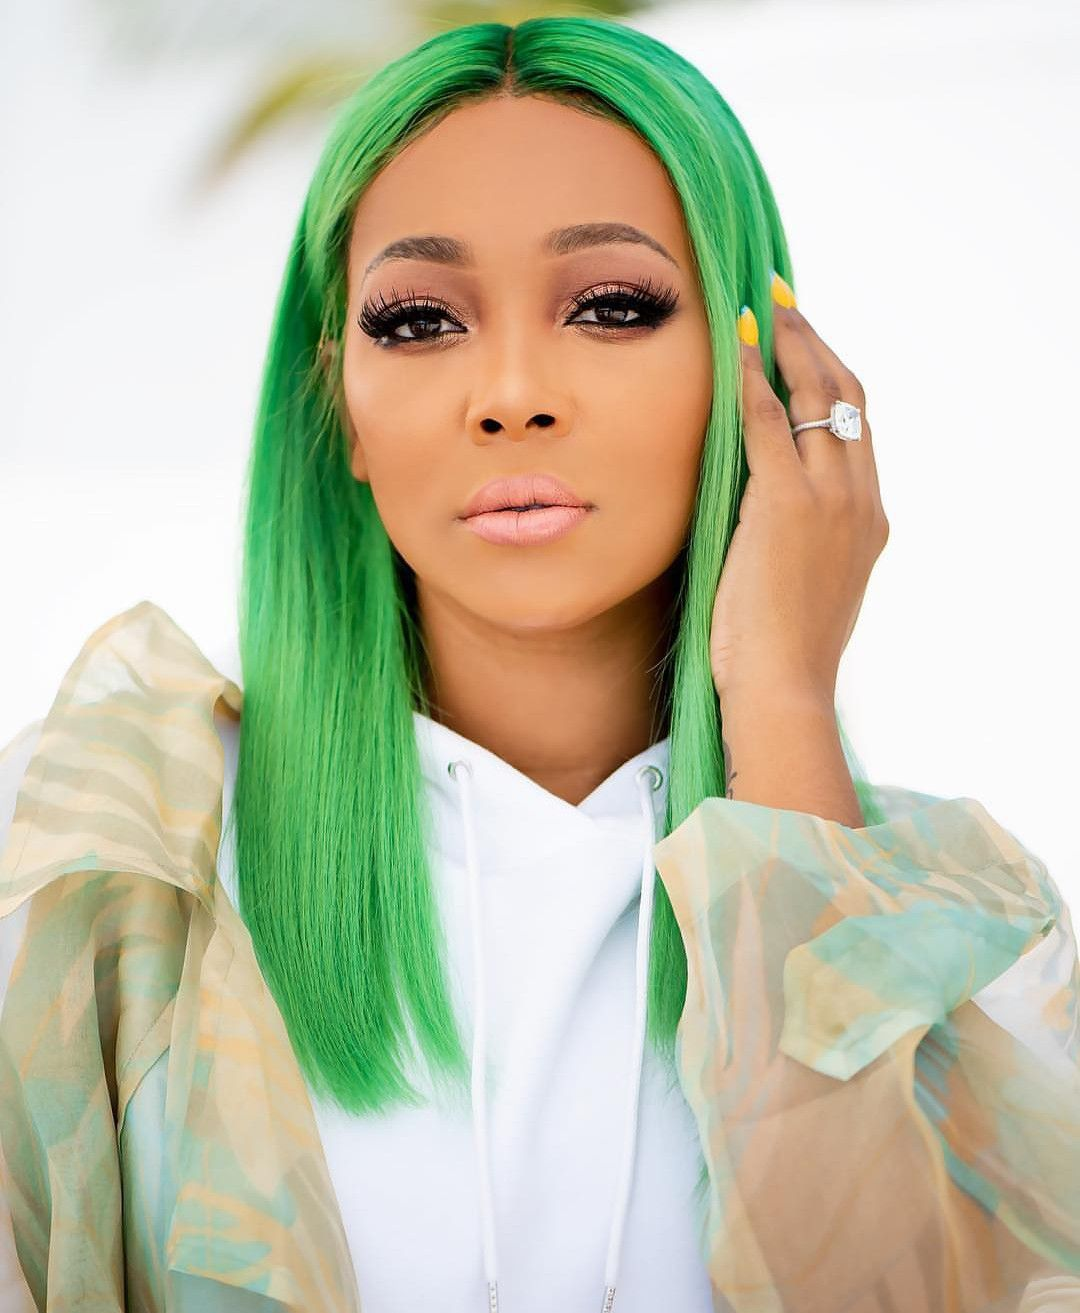 Image result for monica brown green hair